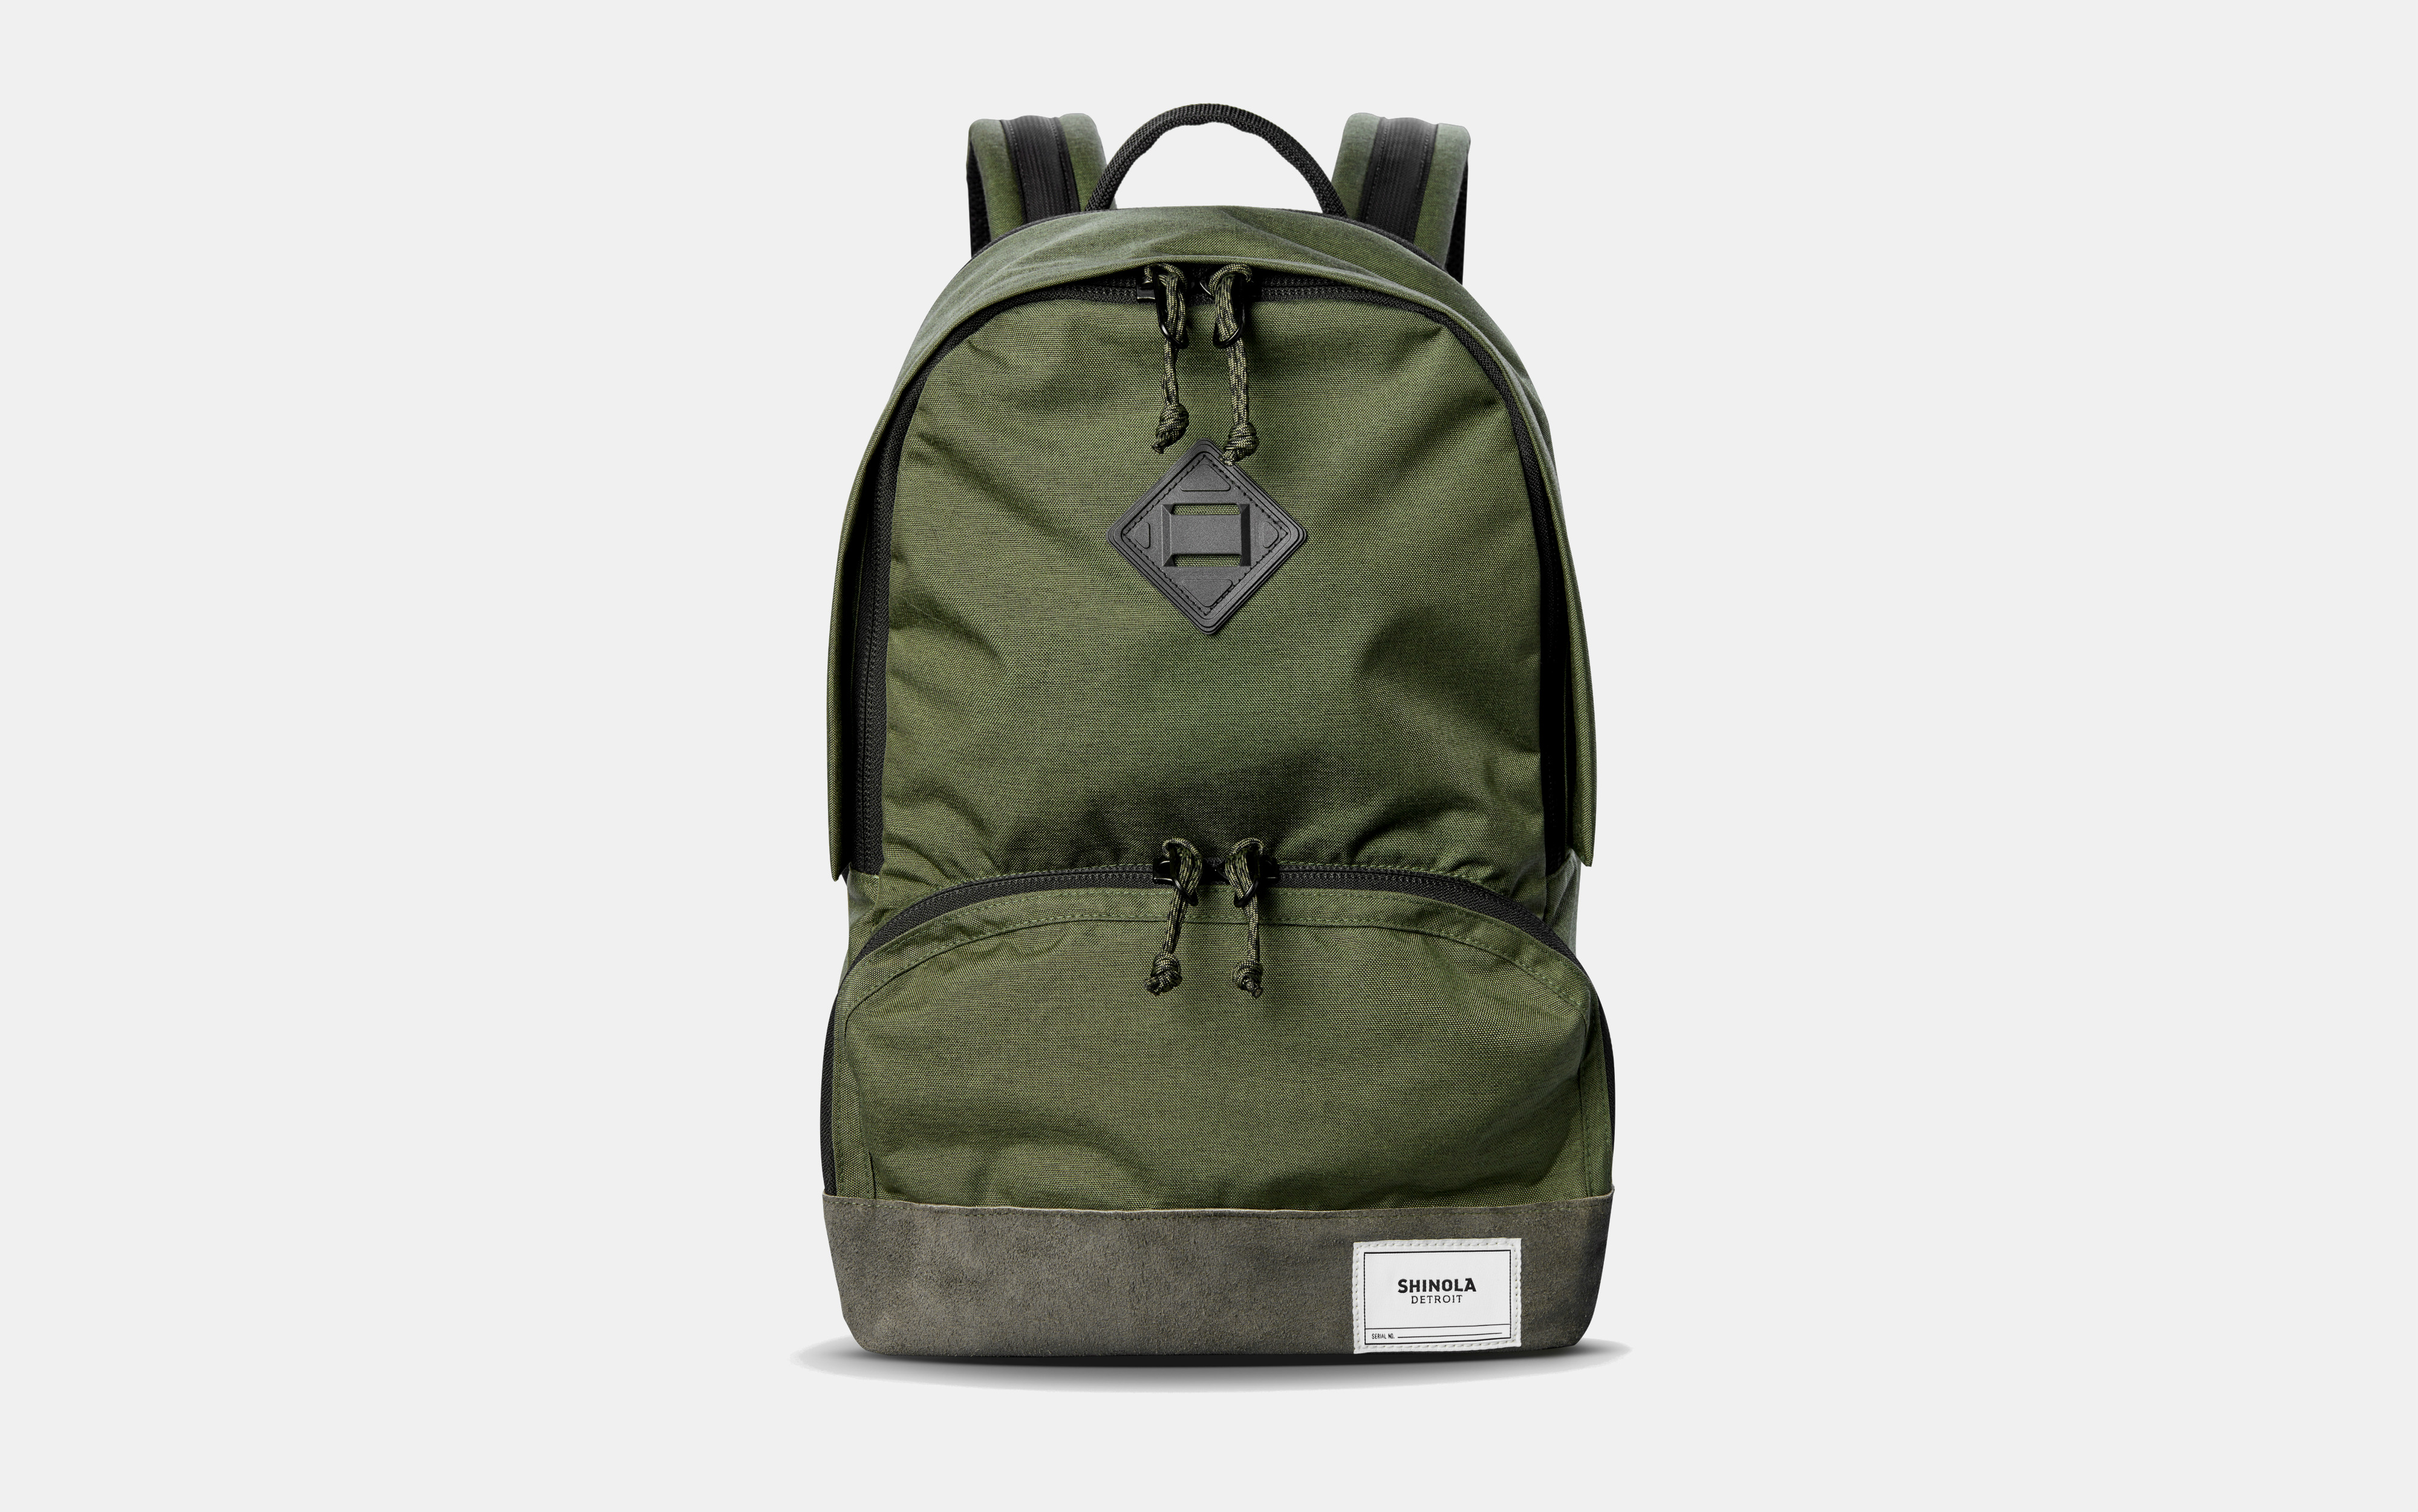 Shinola Rambler Backpack